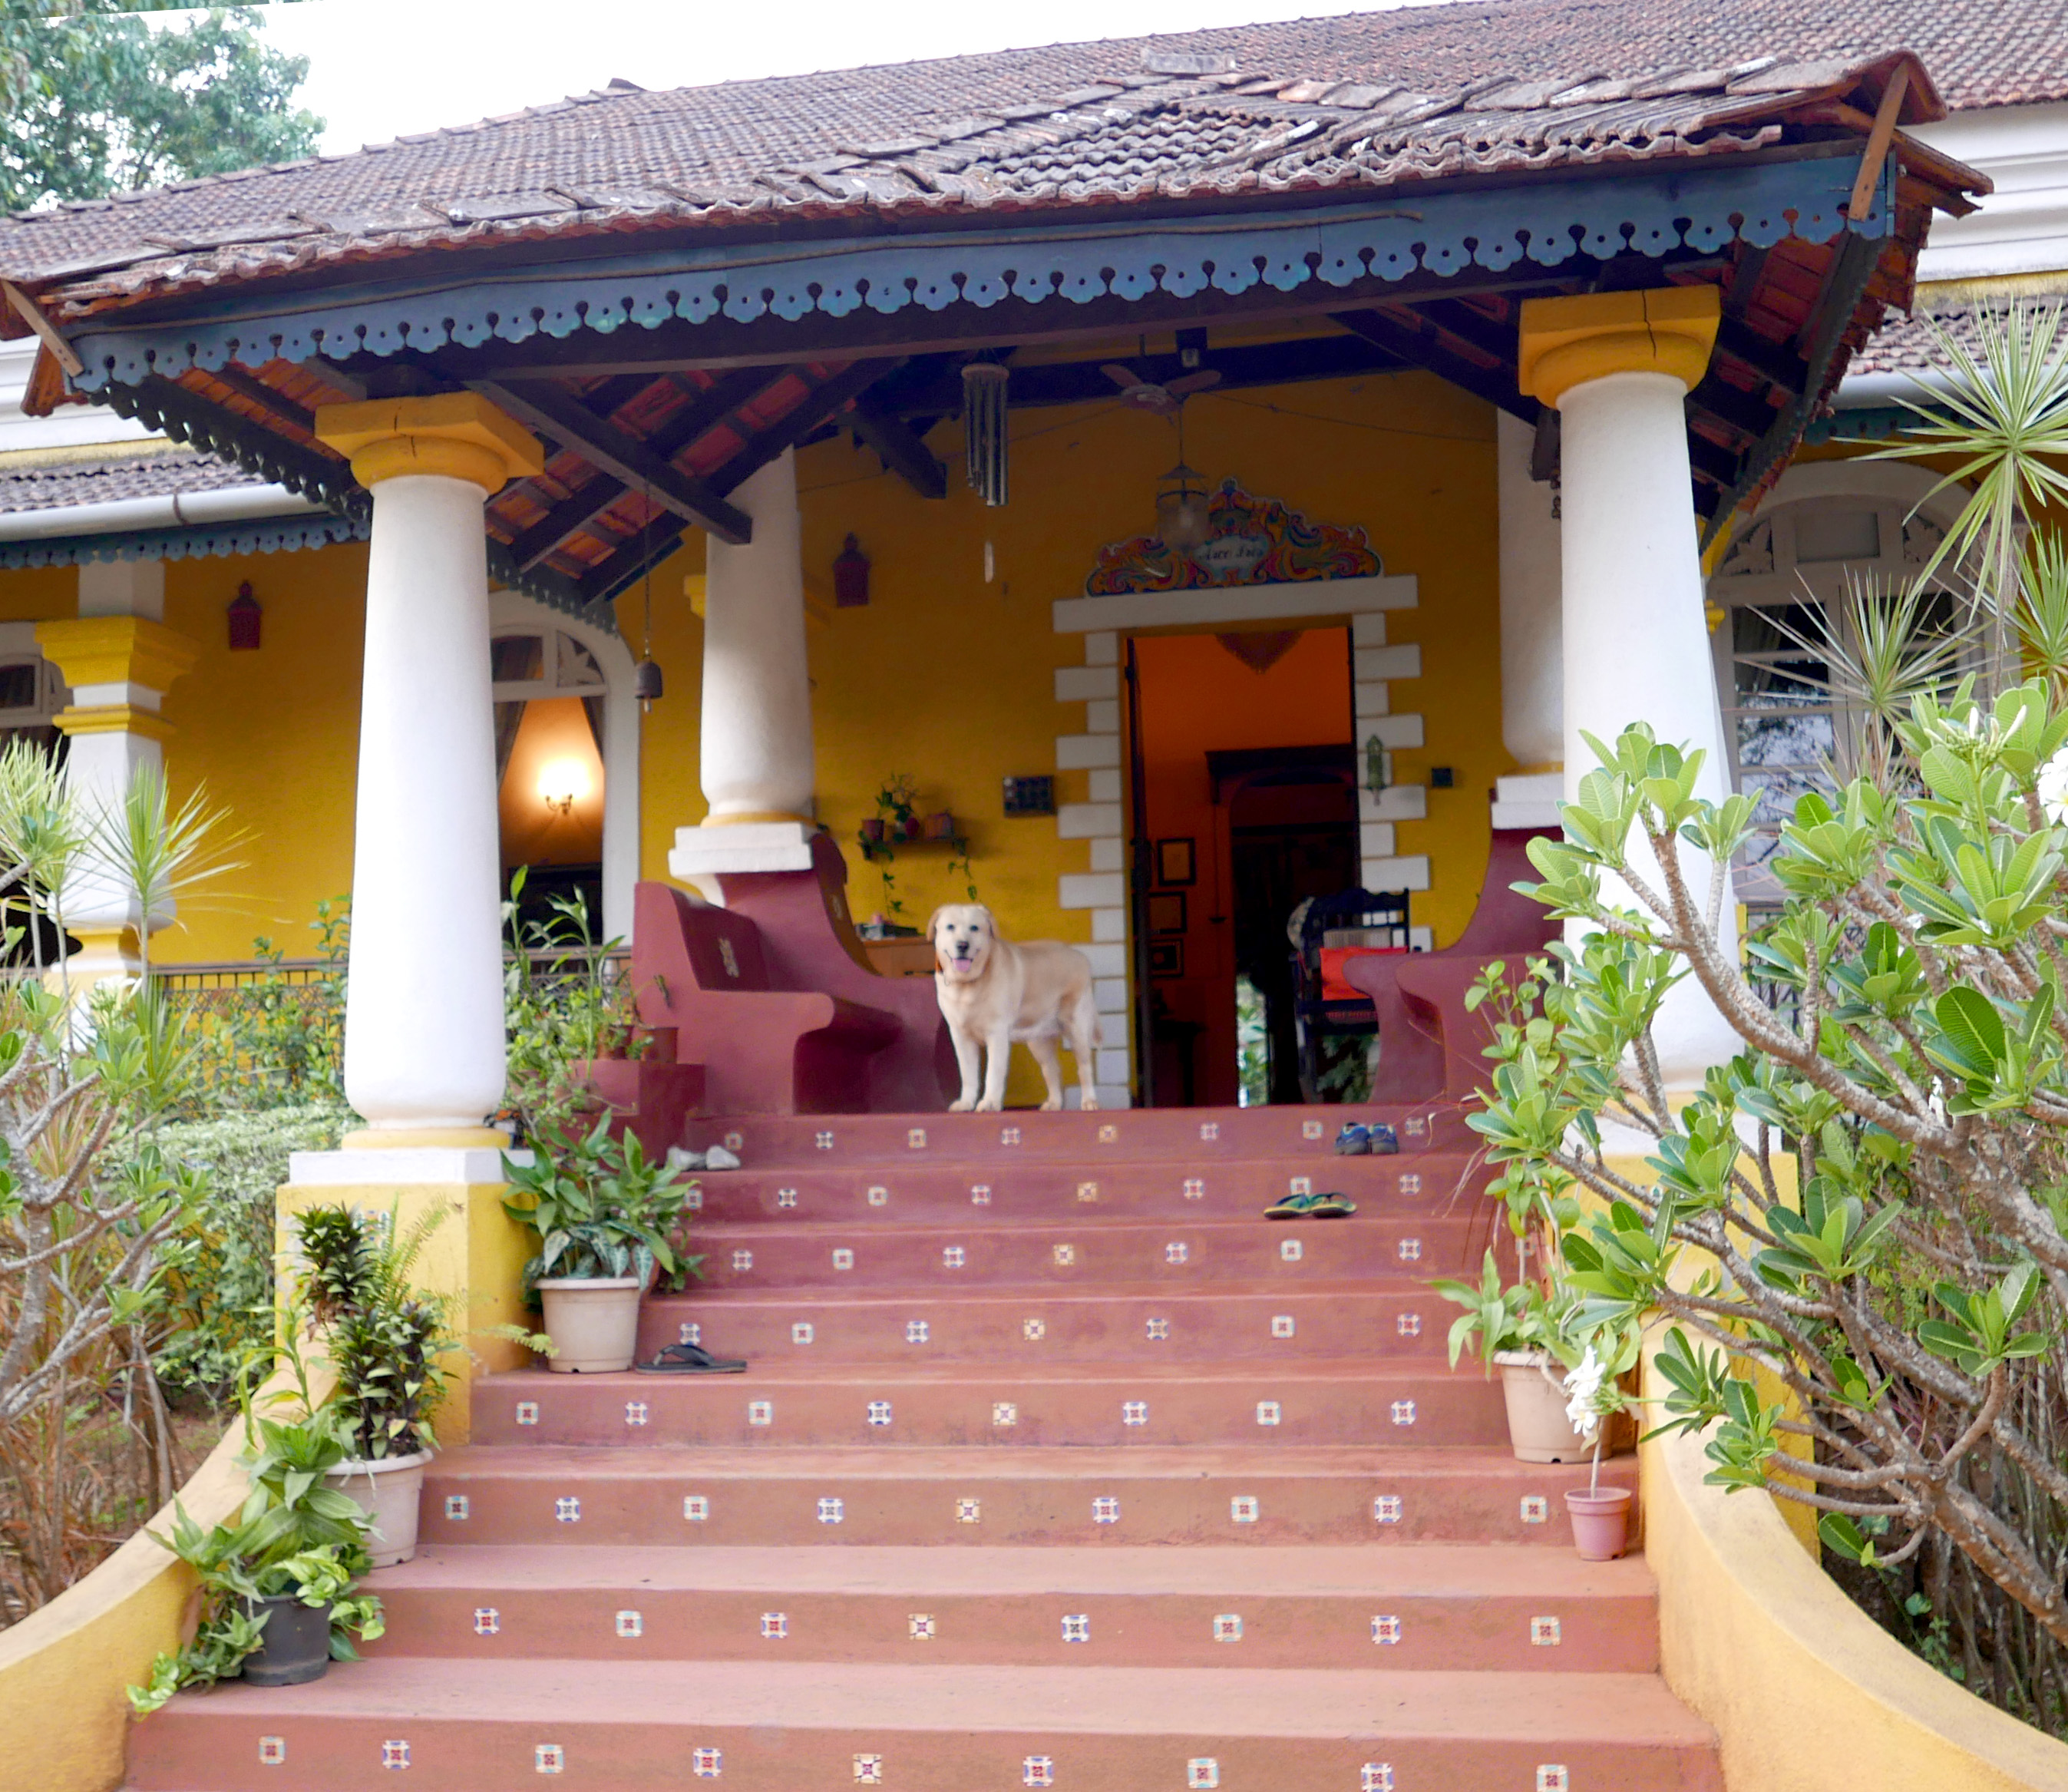 Arco Iris Boutique Homestay Main Entrance